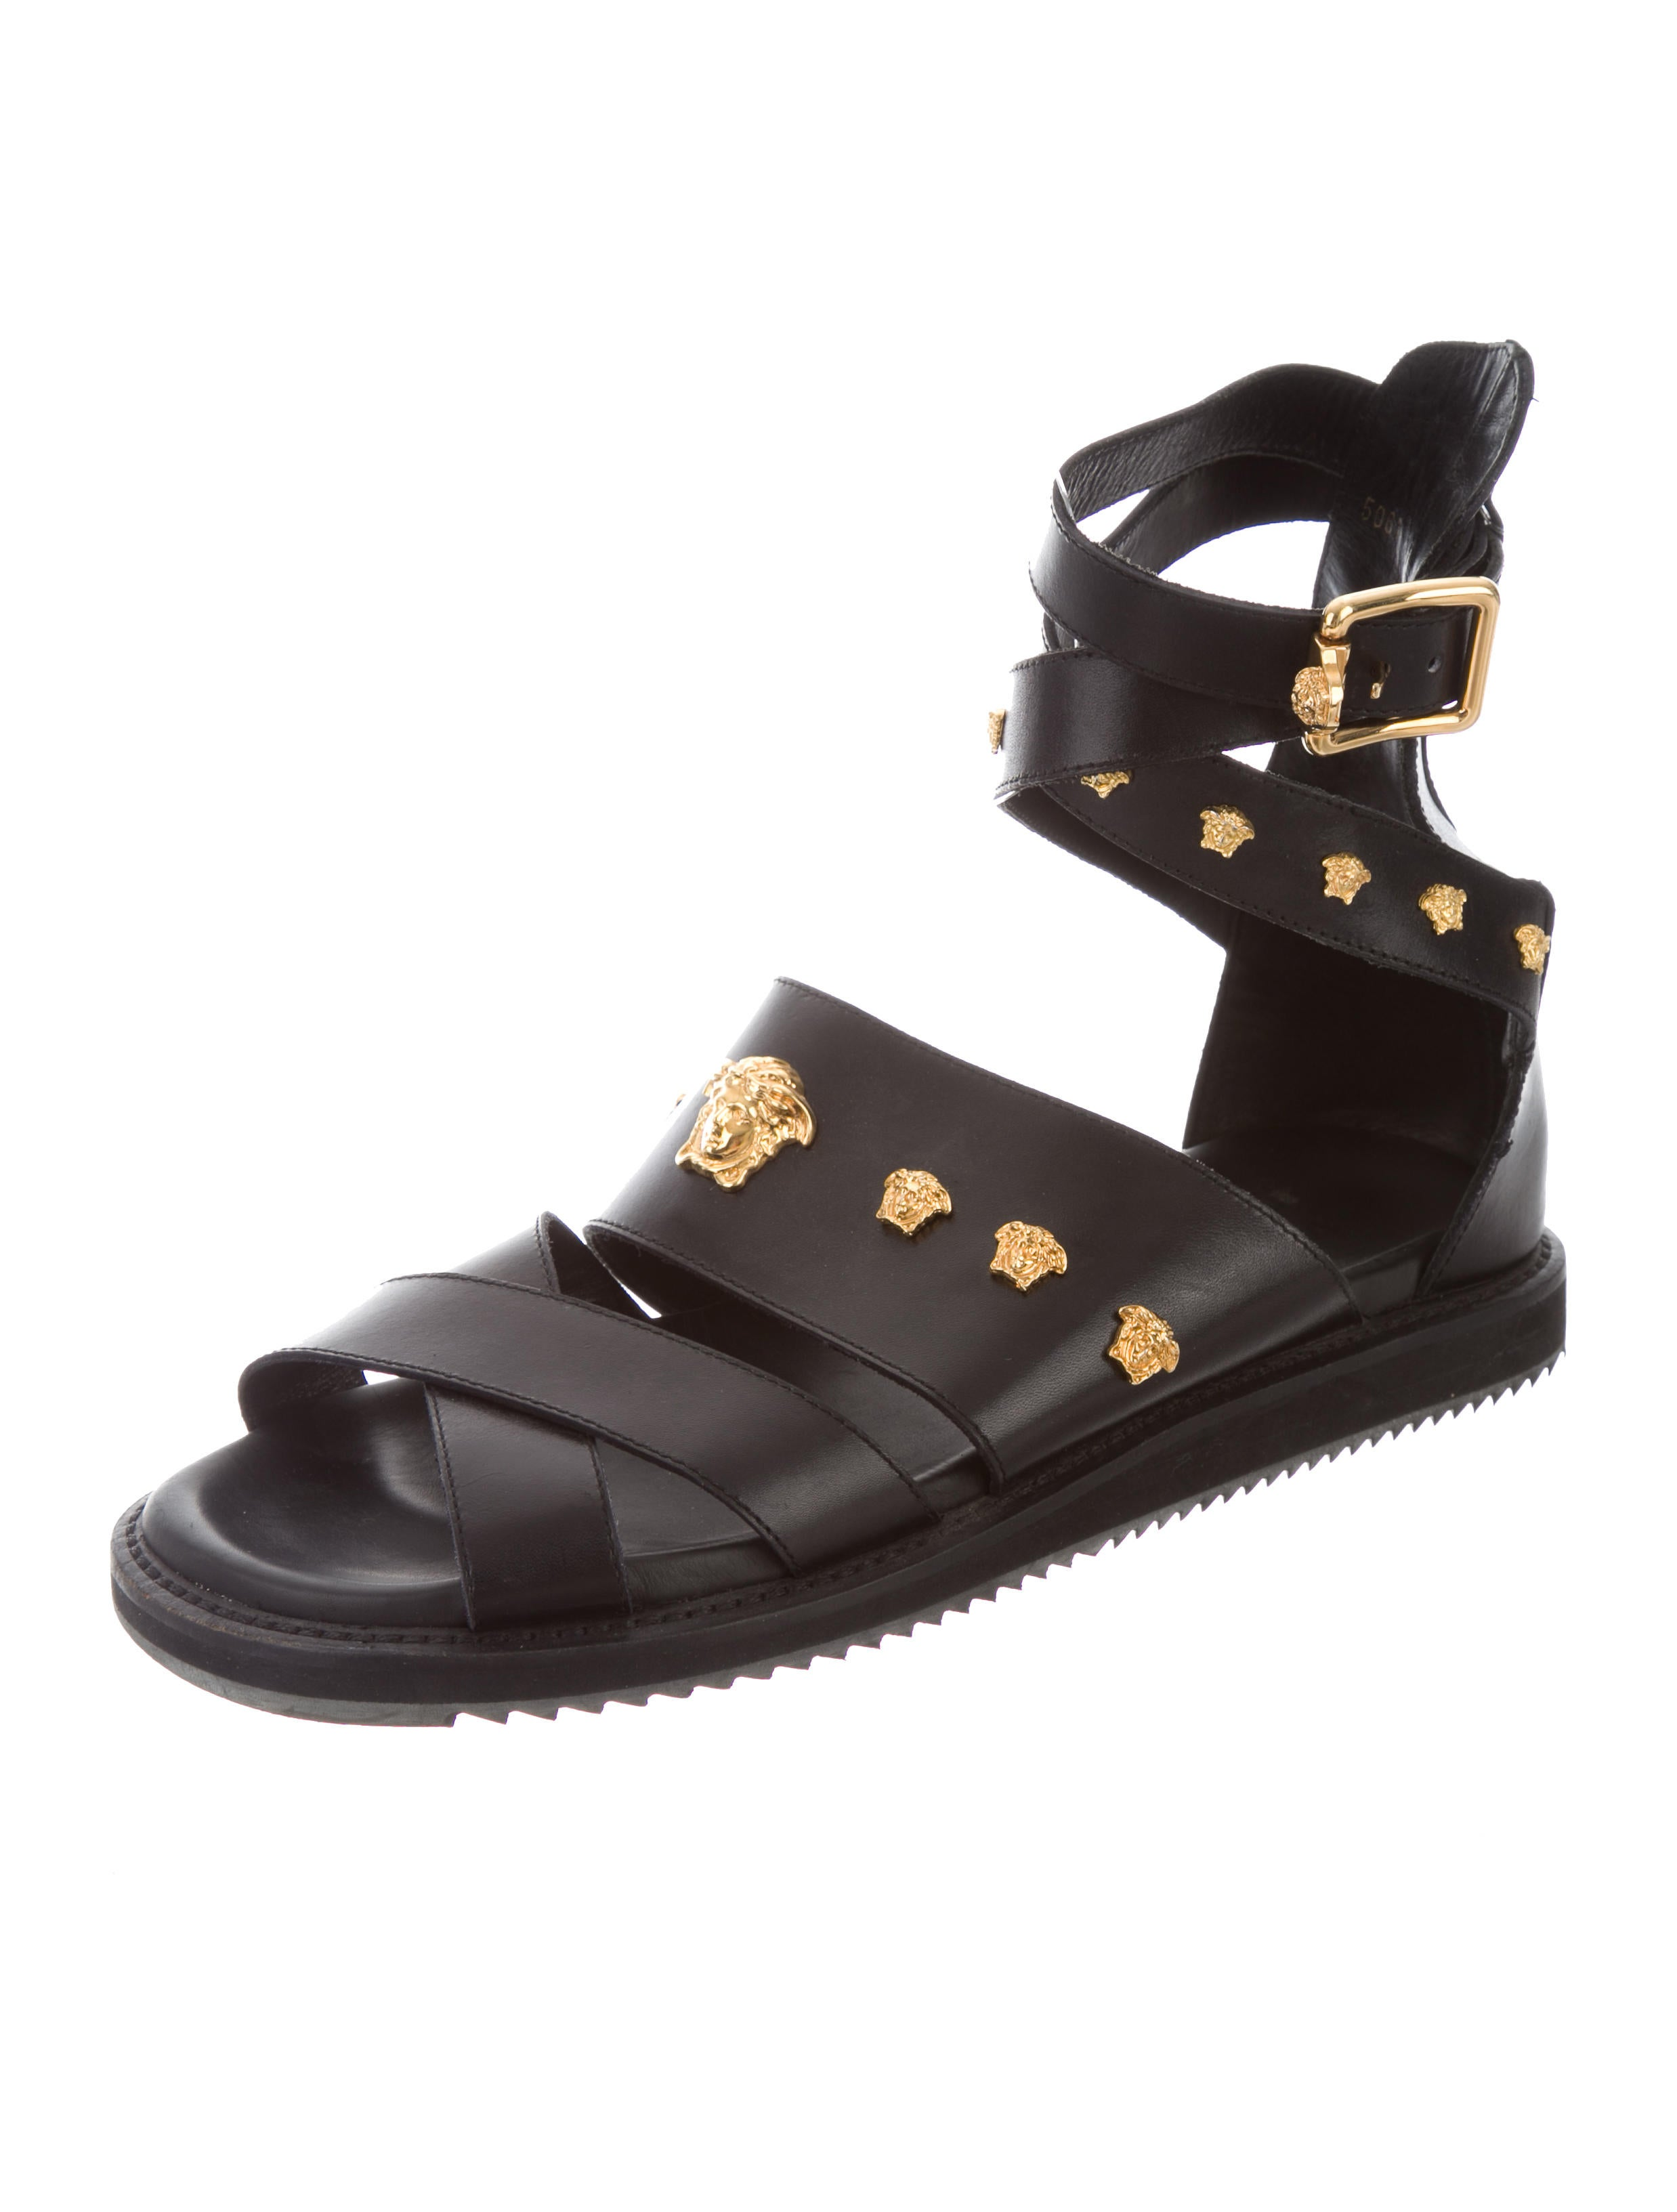 Versace Medusa Leather Sandals - Shoes - VES29189 | The RealReal